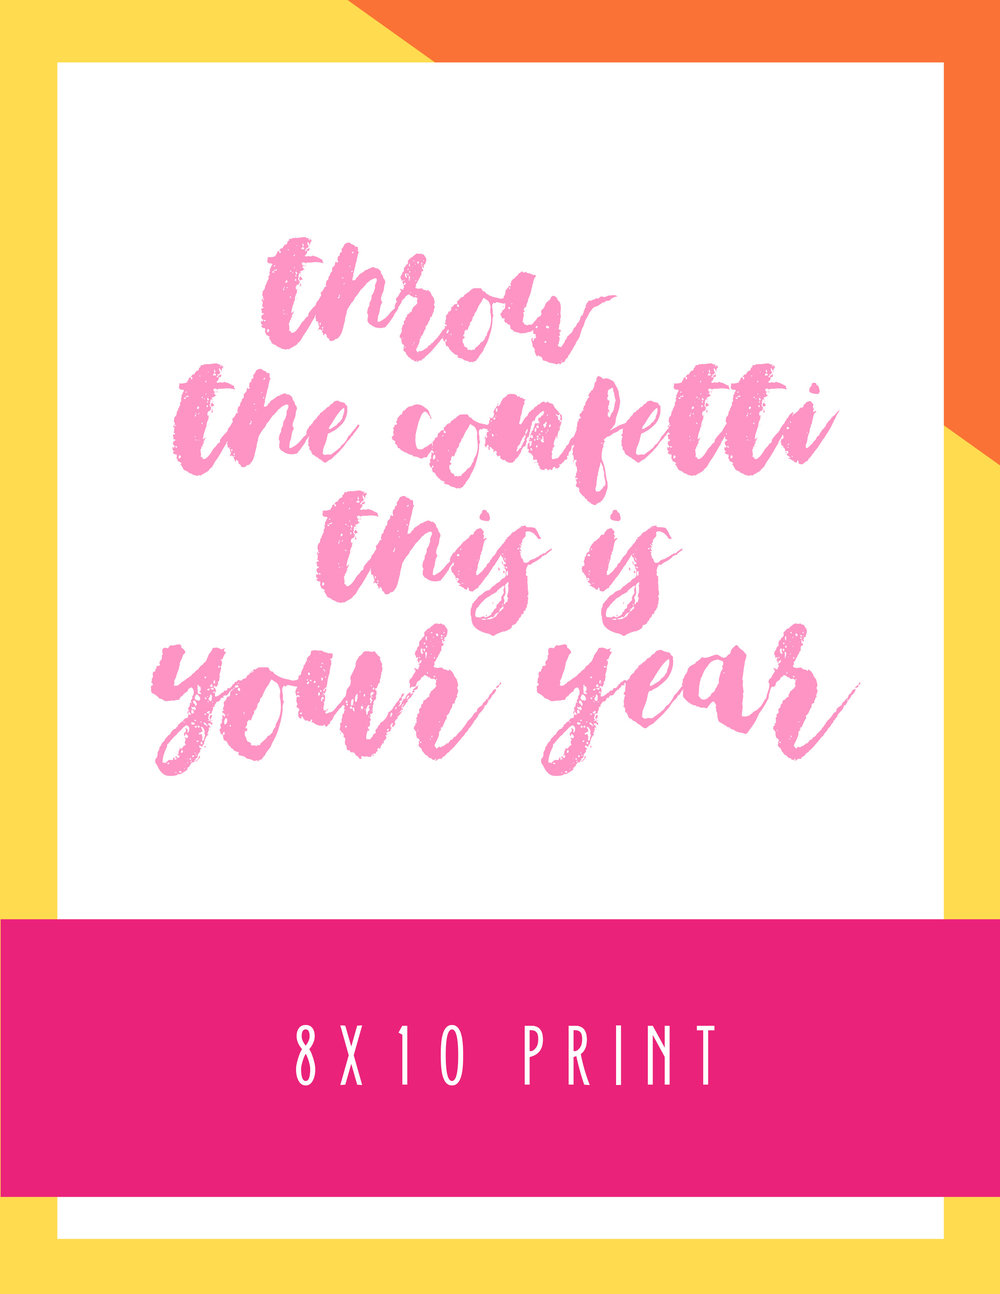 Bold & Pop Freebies Throw Confetti This is Your Year 8x10 Print